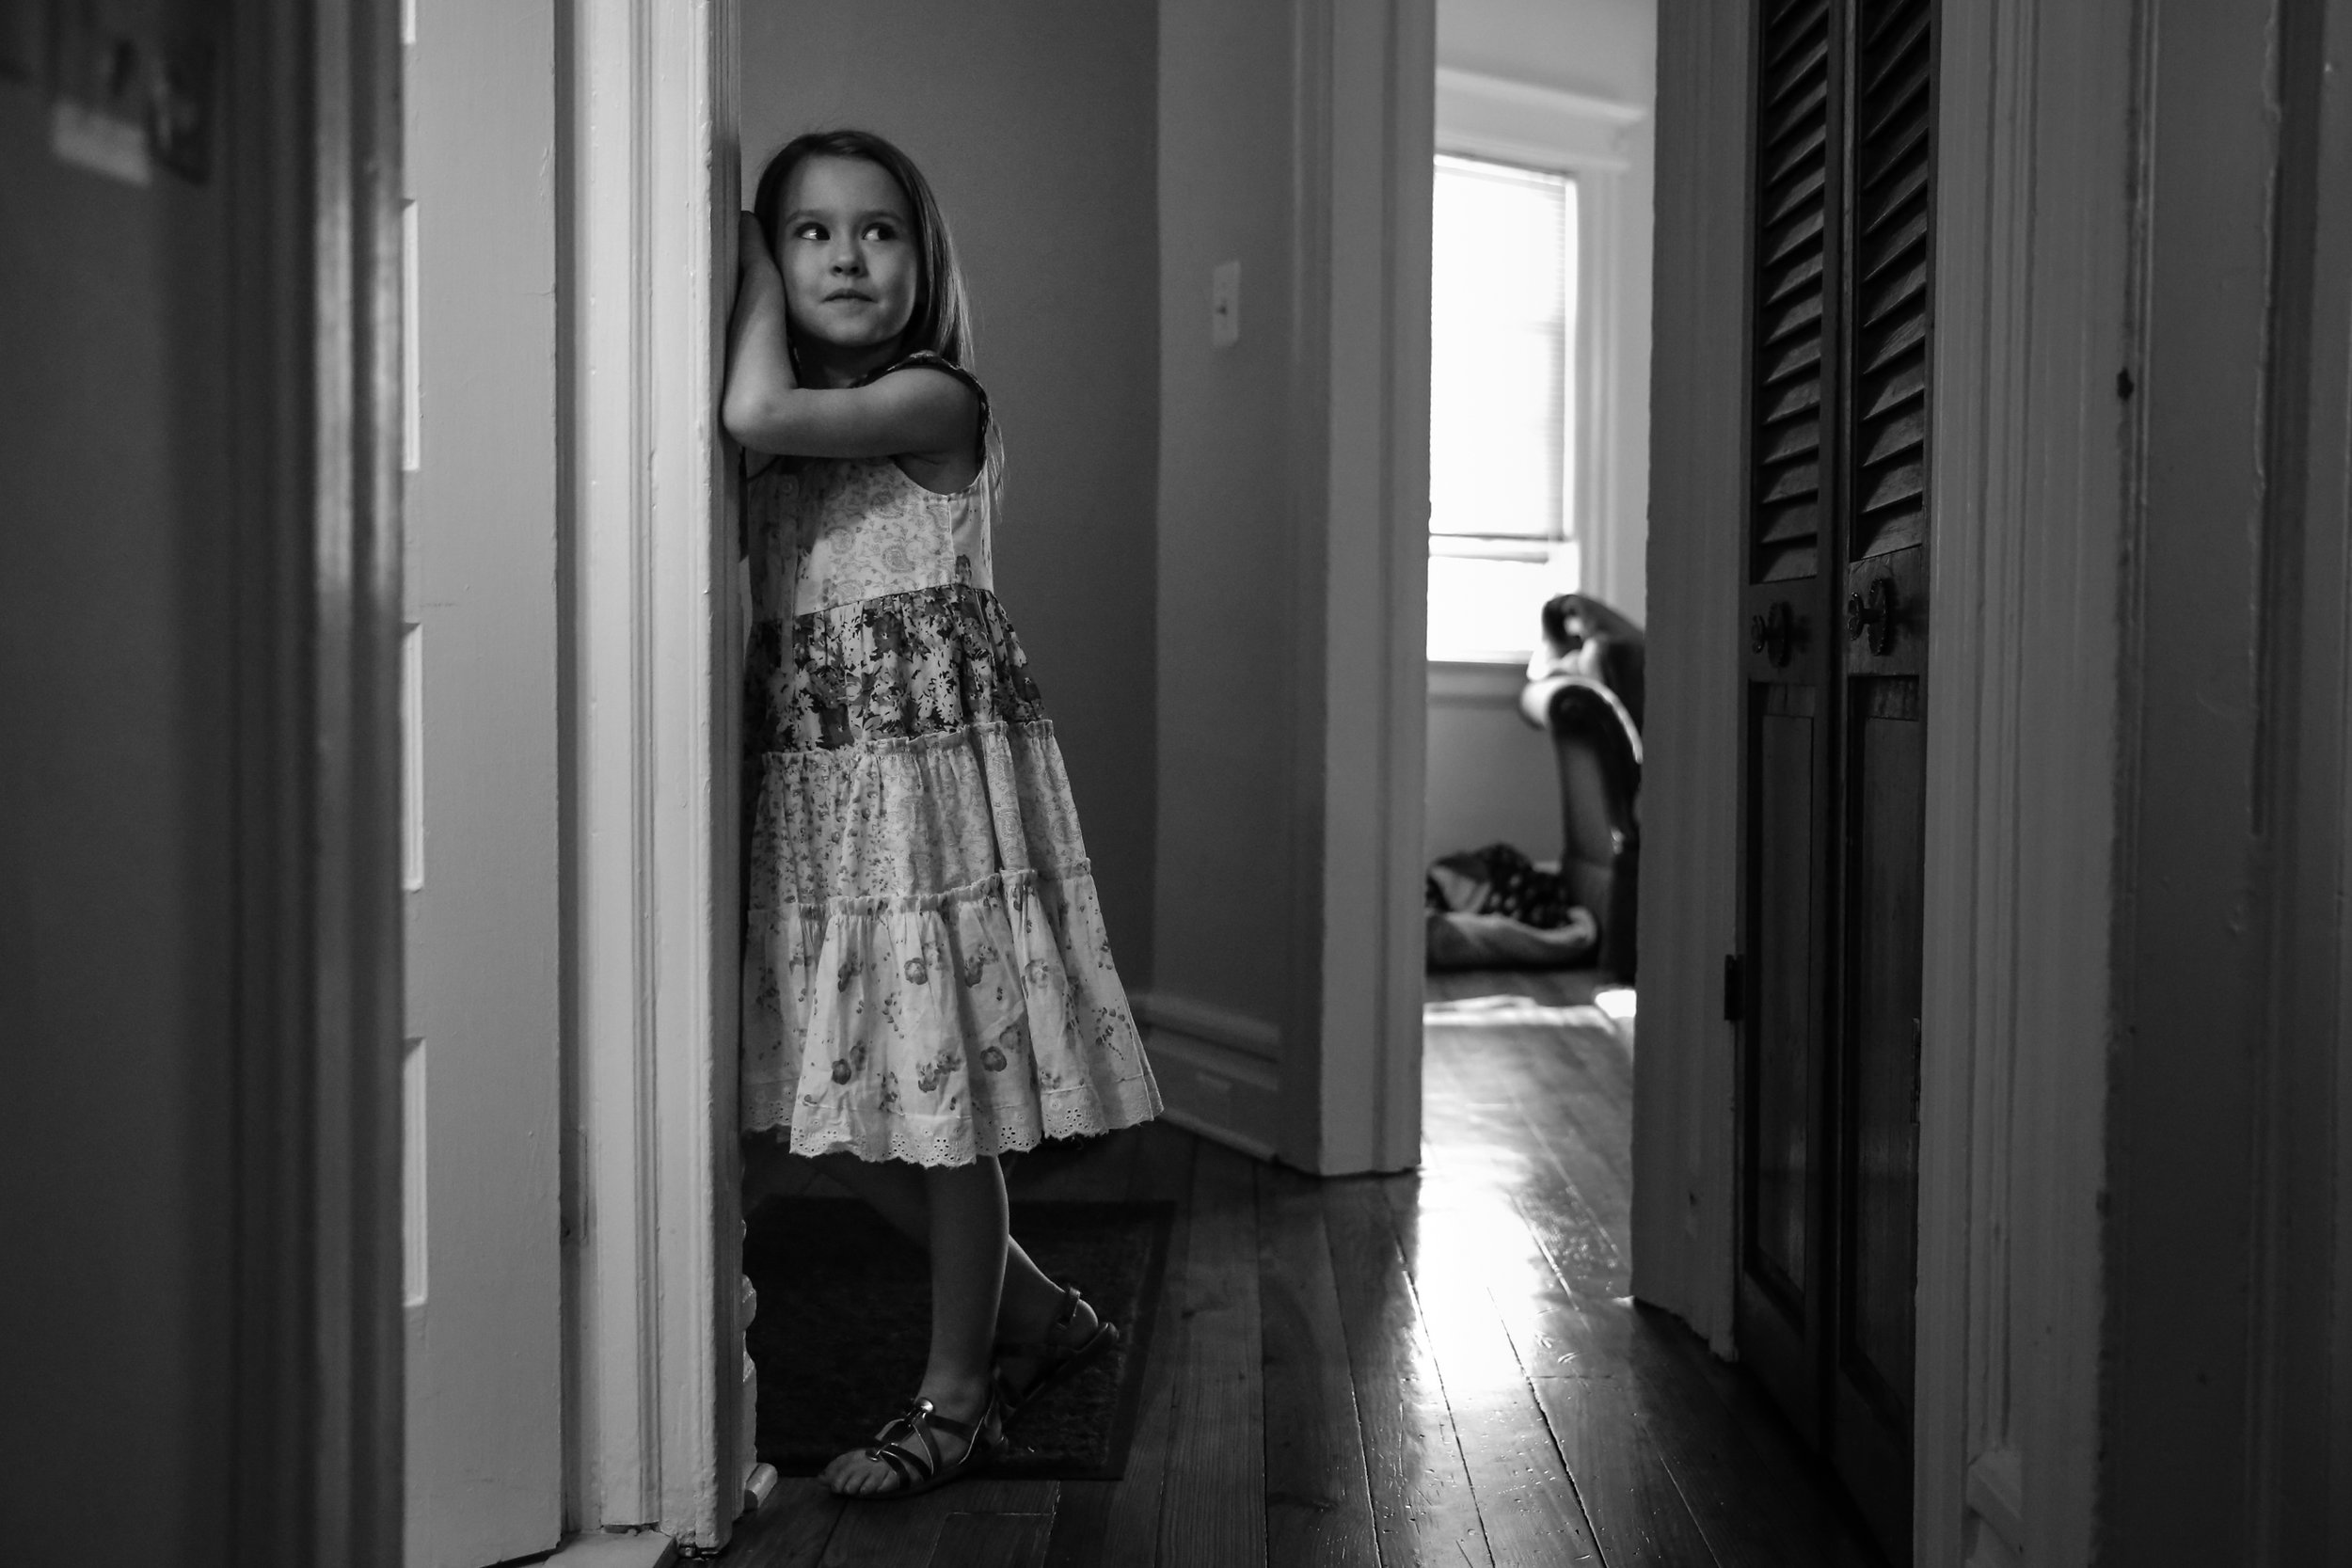 Girl stands and leans against hallway wall